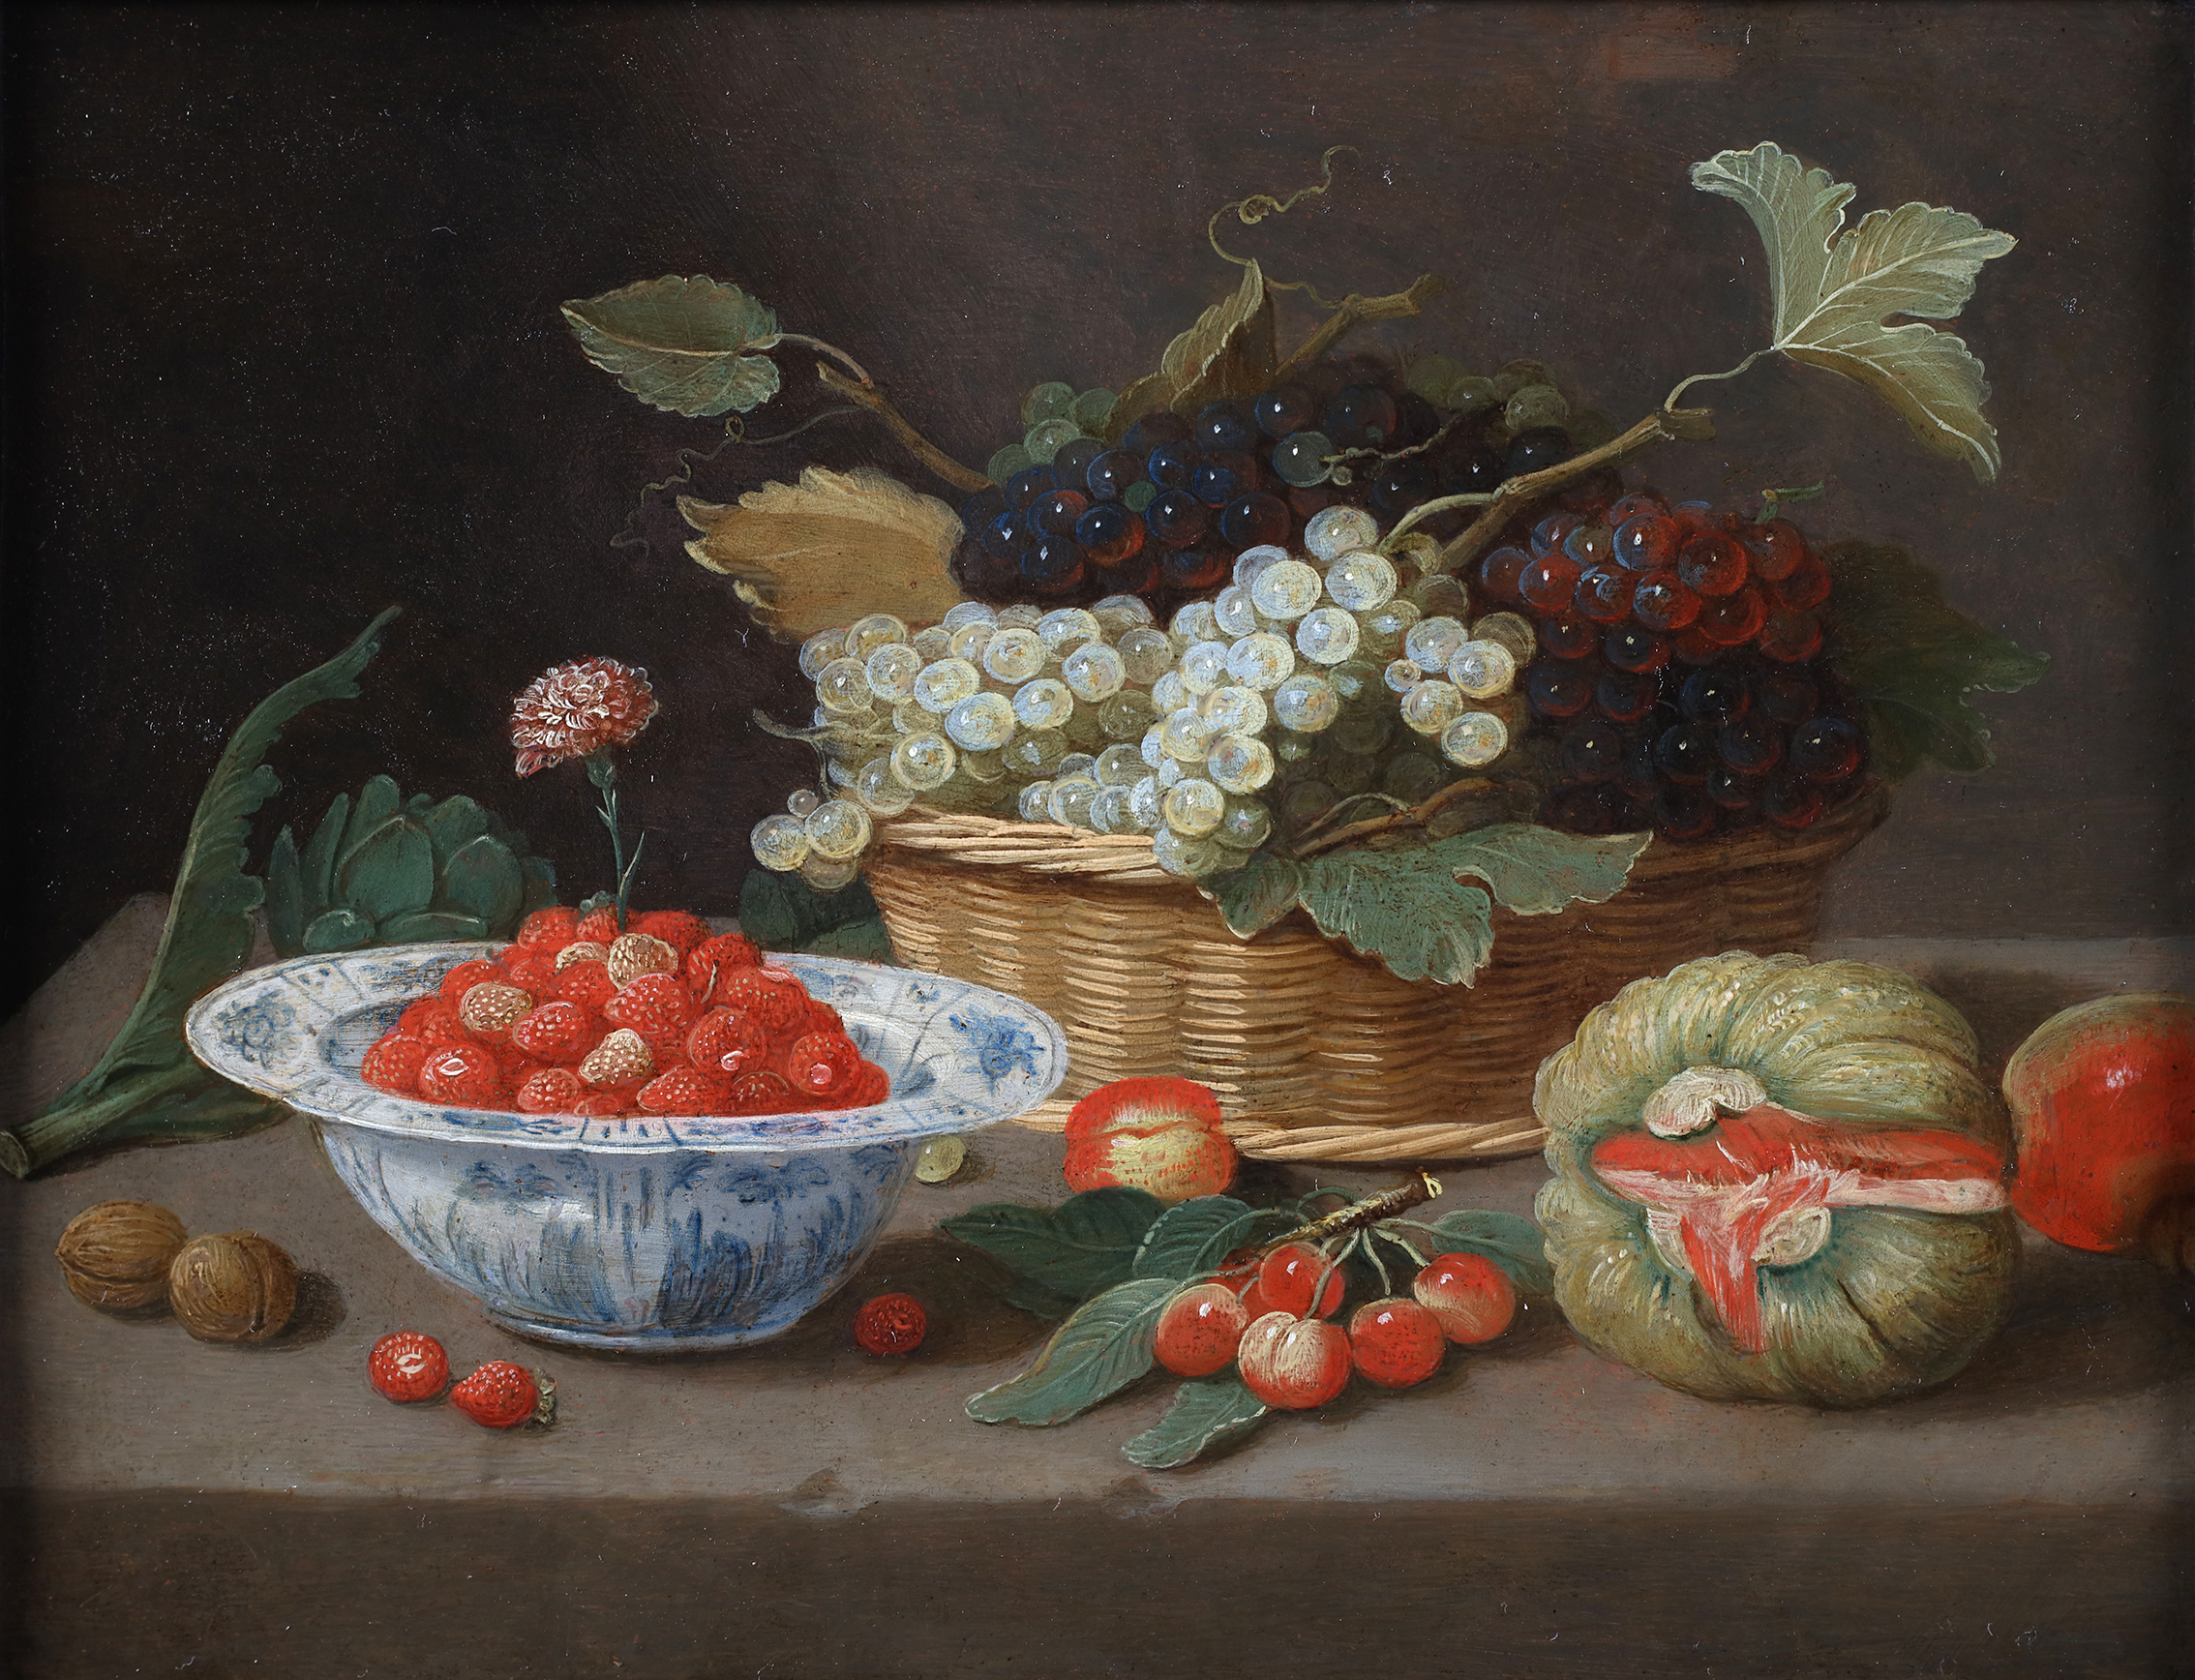 A basket with grapes, a Wanli bowl with strawberries, some cherries and a melon